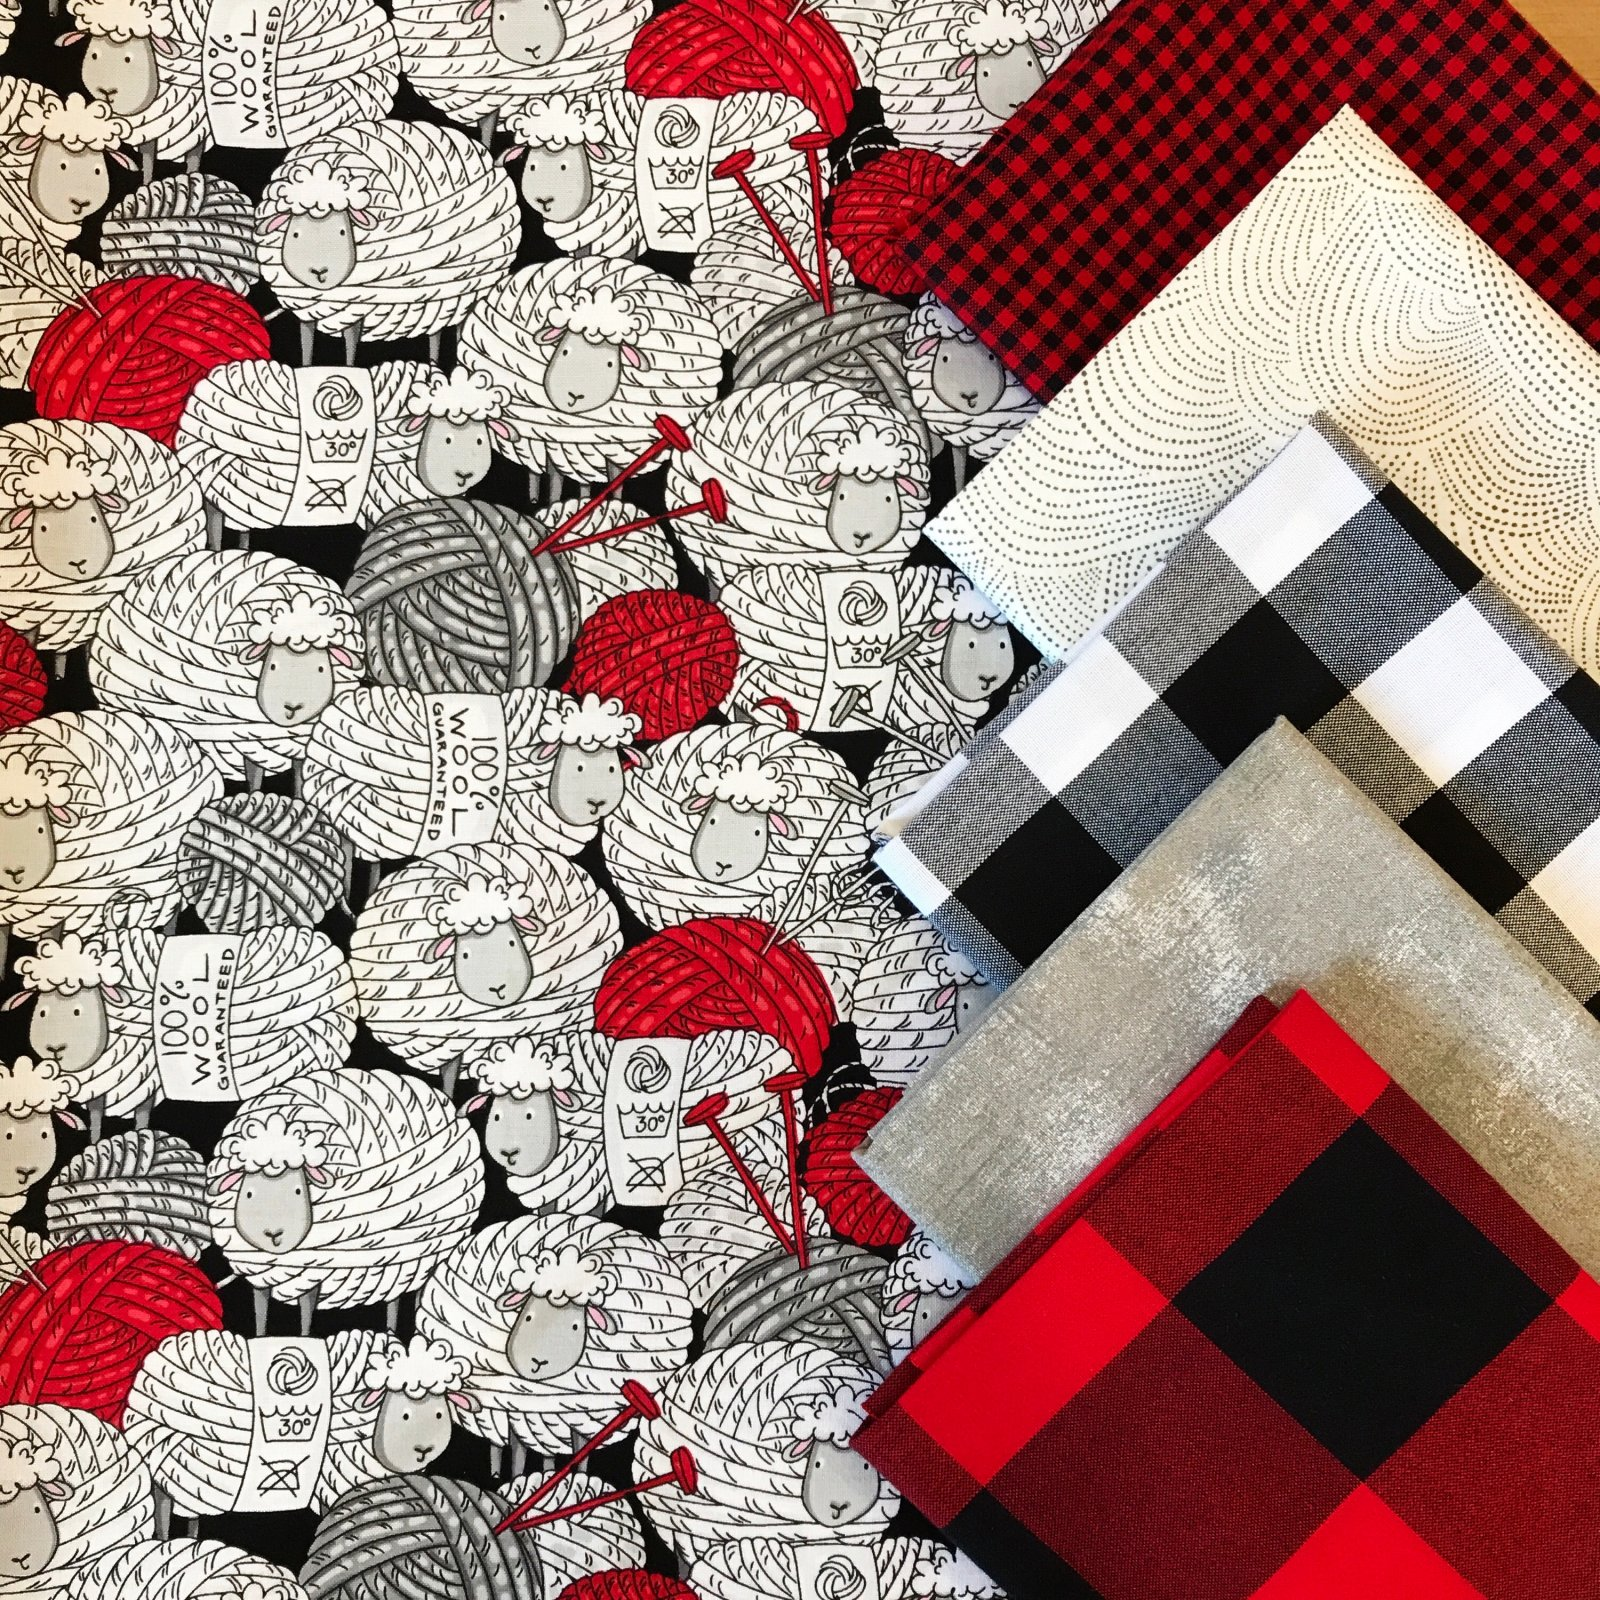 Purls & Plaid FQ Bundle - 6 Pieces